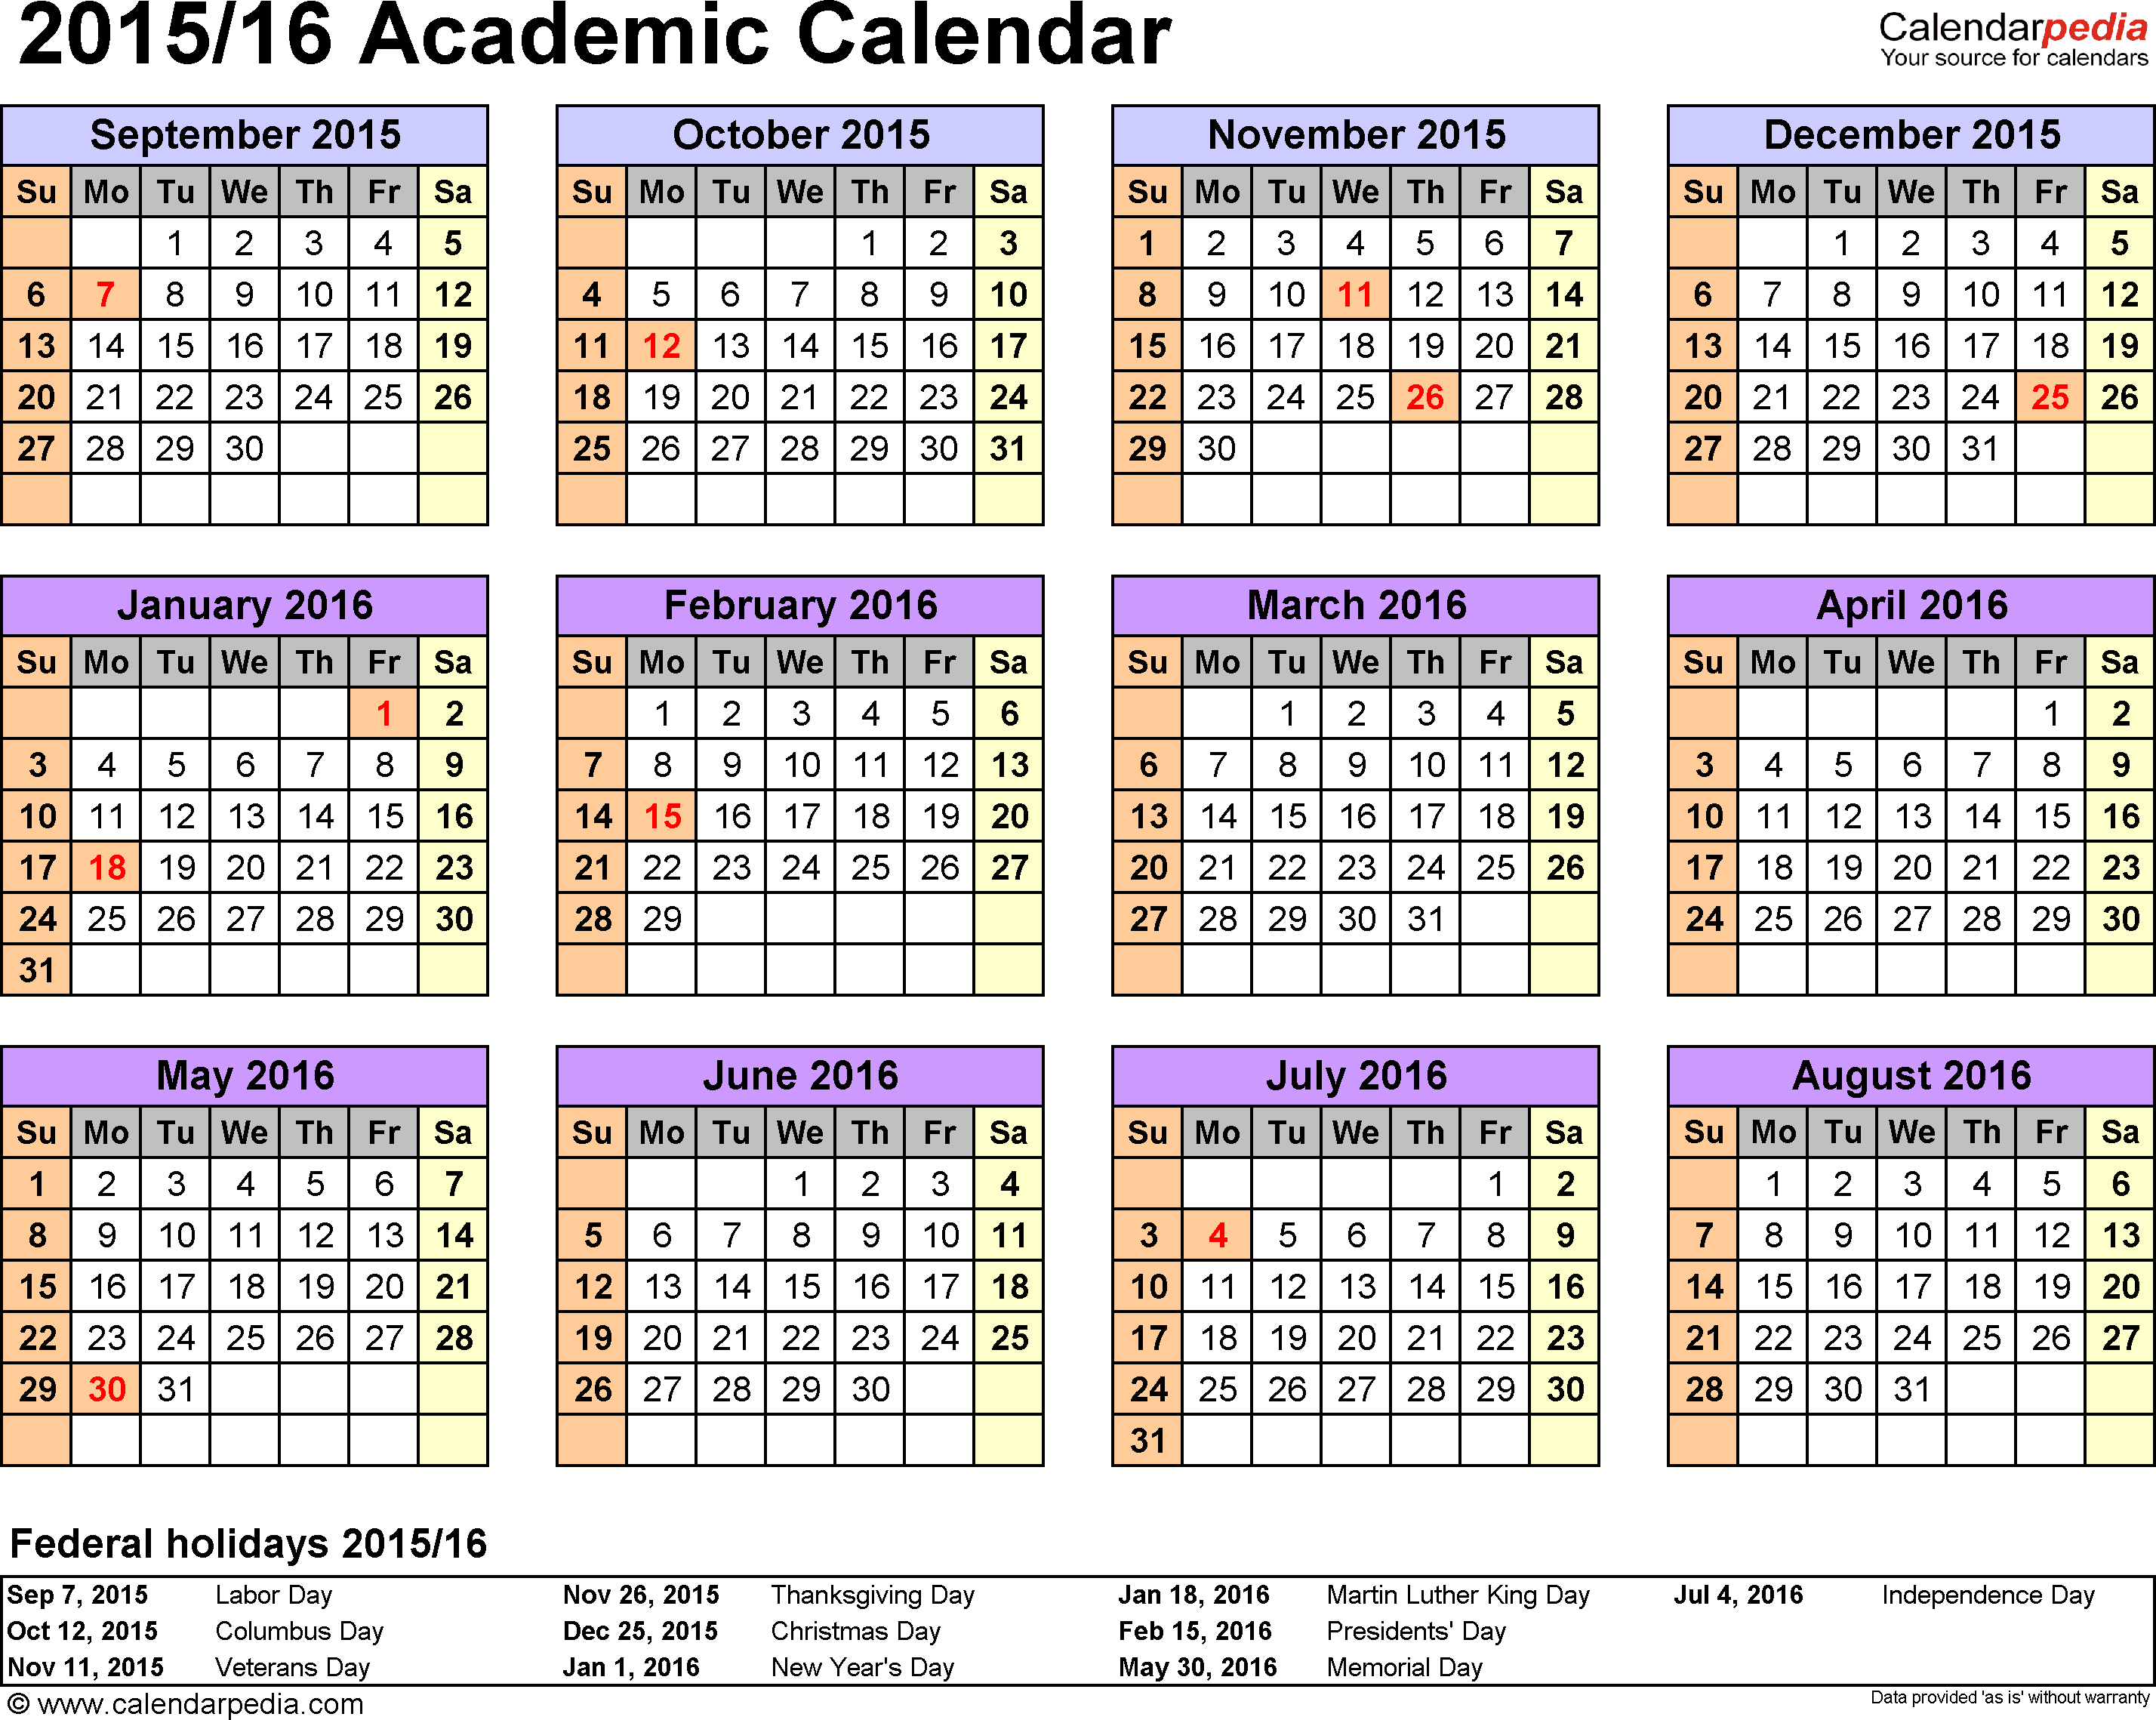 Download Template 4: Academic calendar 2015/16 in PDF format, landscape, 1 page, year at a glance